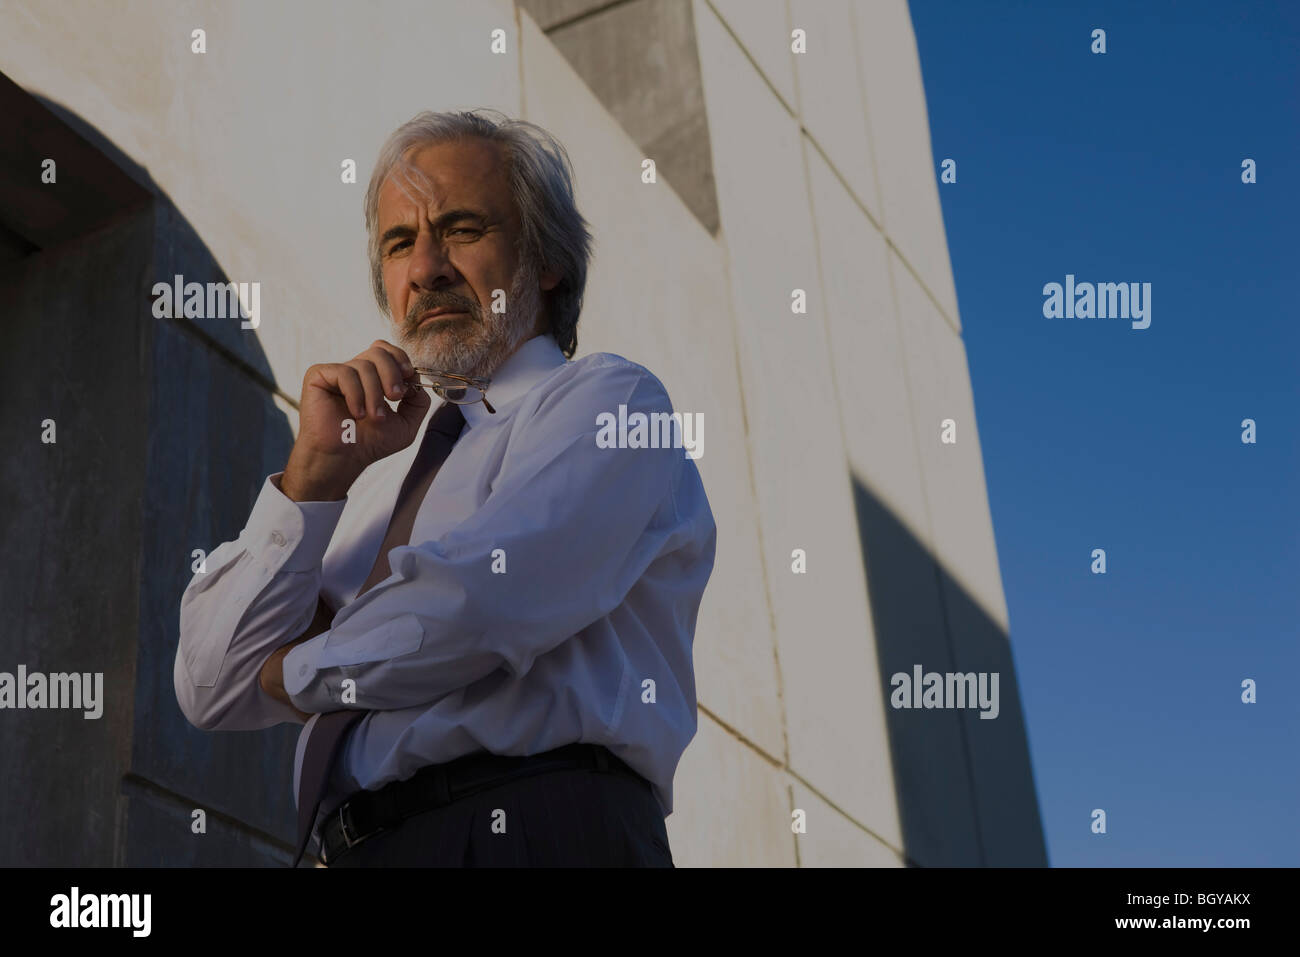 Businessman with hand under chin looking at camera, low angle view - Stock Image